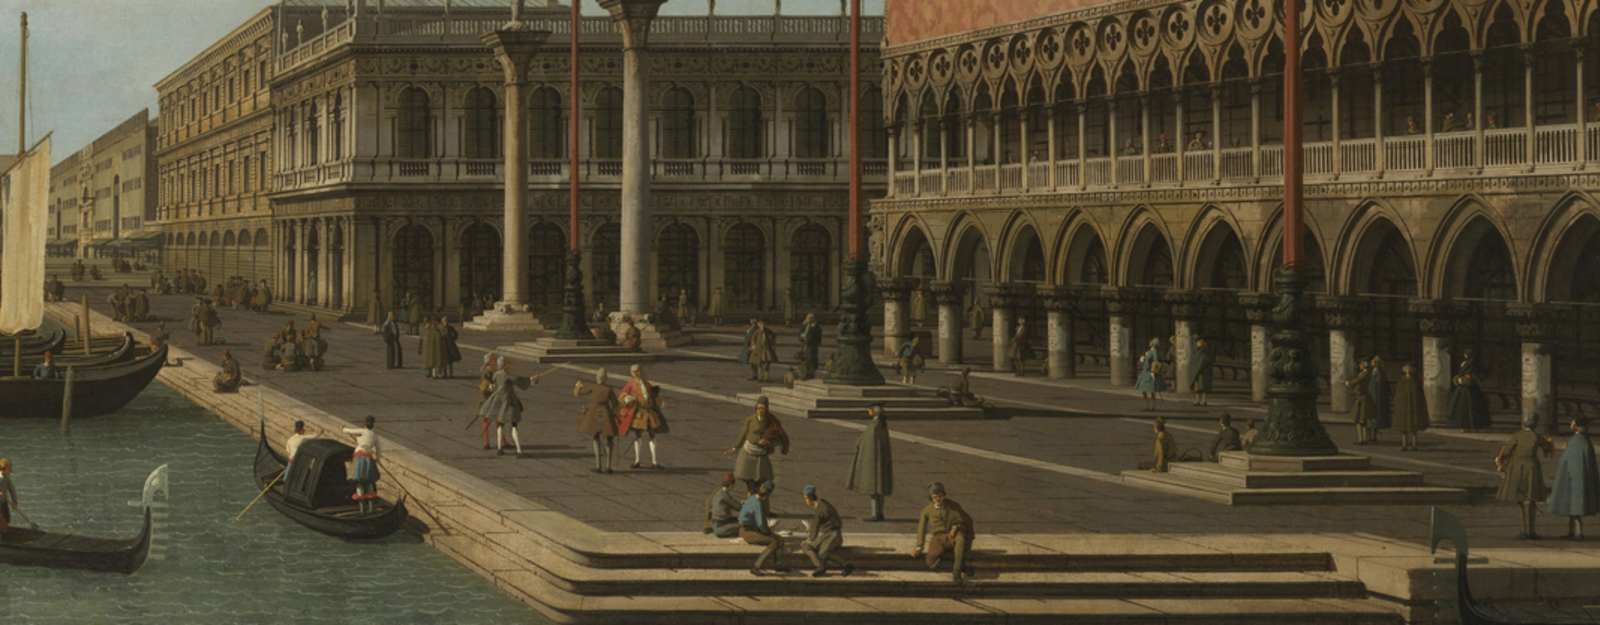 Image by Canaletto in Venice